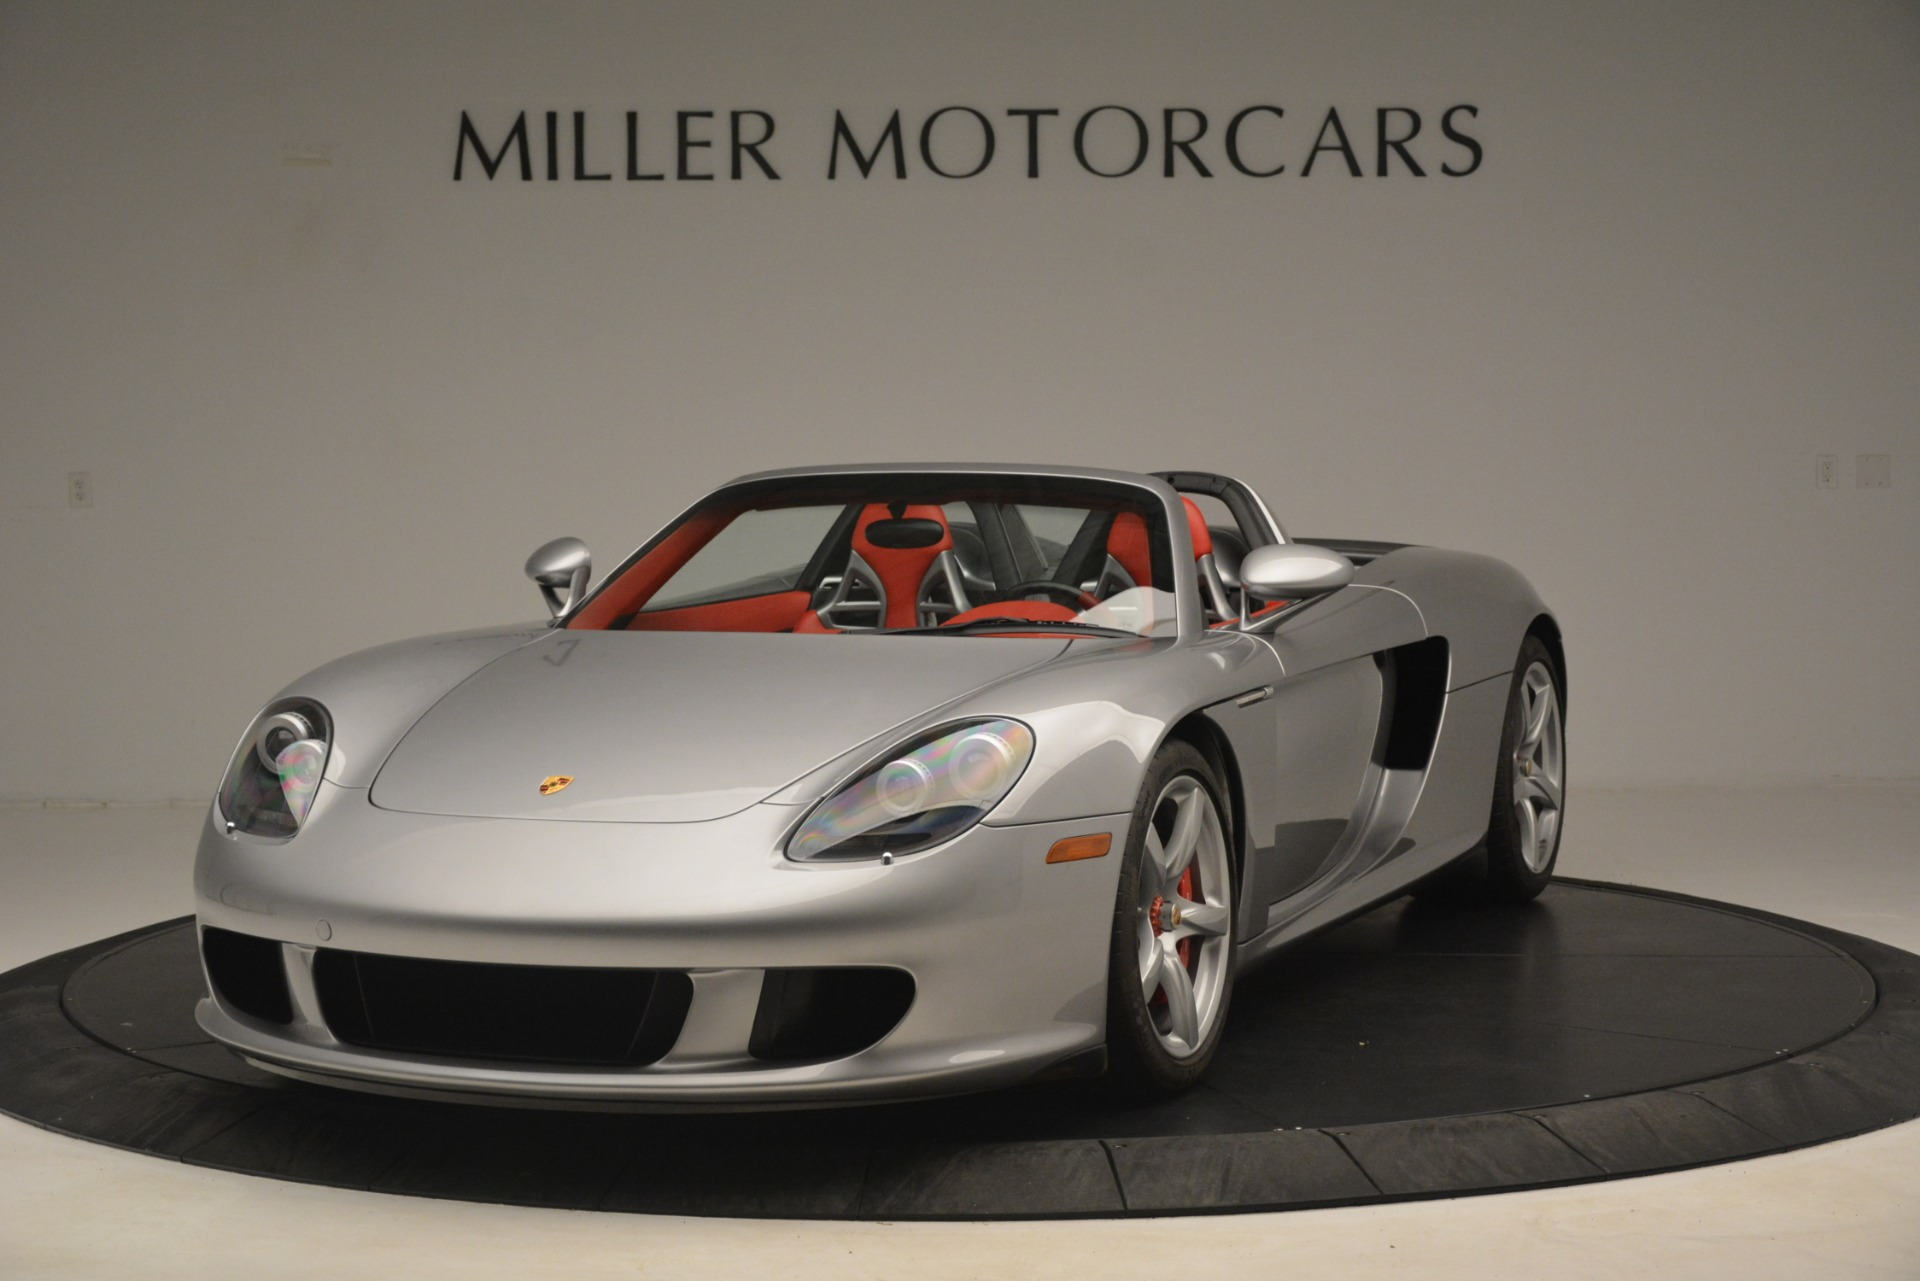 Used 2005 Porsche Carrera GT for sale Sold at Aston Martin of Greenwich in Greenwich CT 06830 1